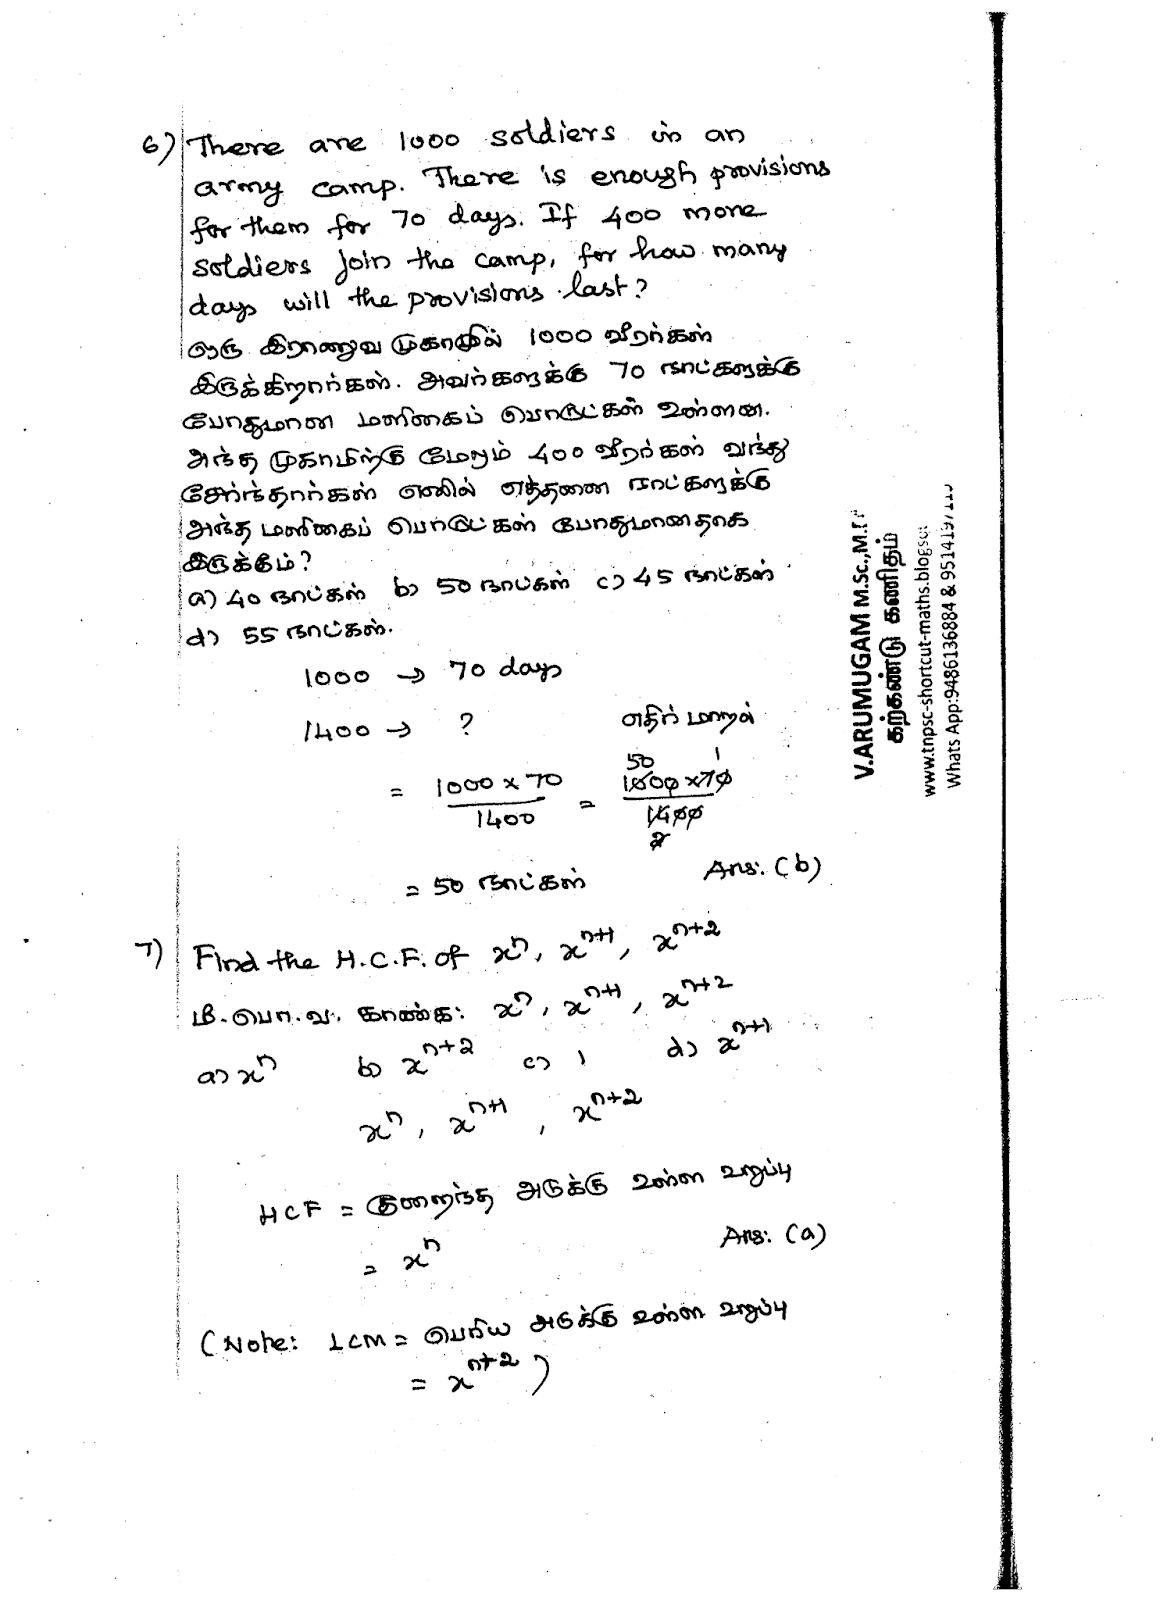 TNPSC – 2019 - Project Officer in Tamil Nadu General Service and Psychologist in Tamil Nadu Jail Service EXAM - EXAM DATE: 21.12.2019. PAGE - 09/15